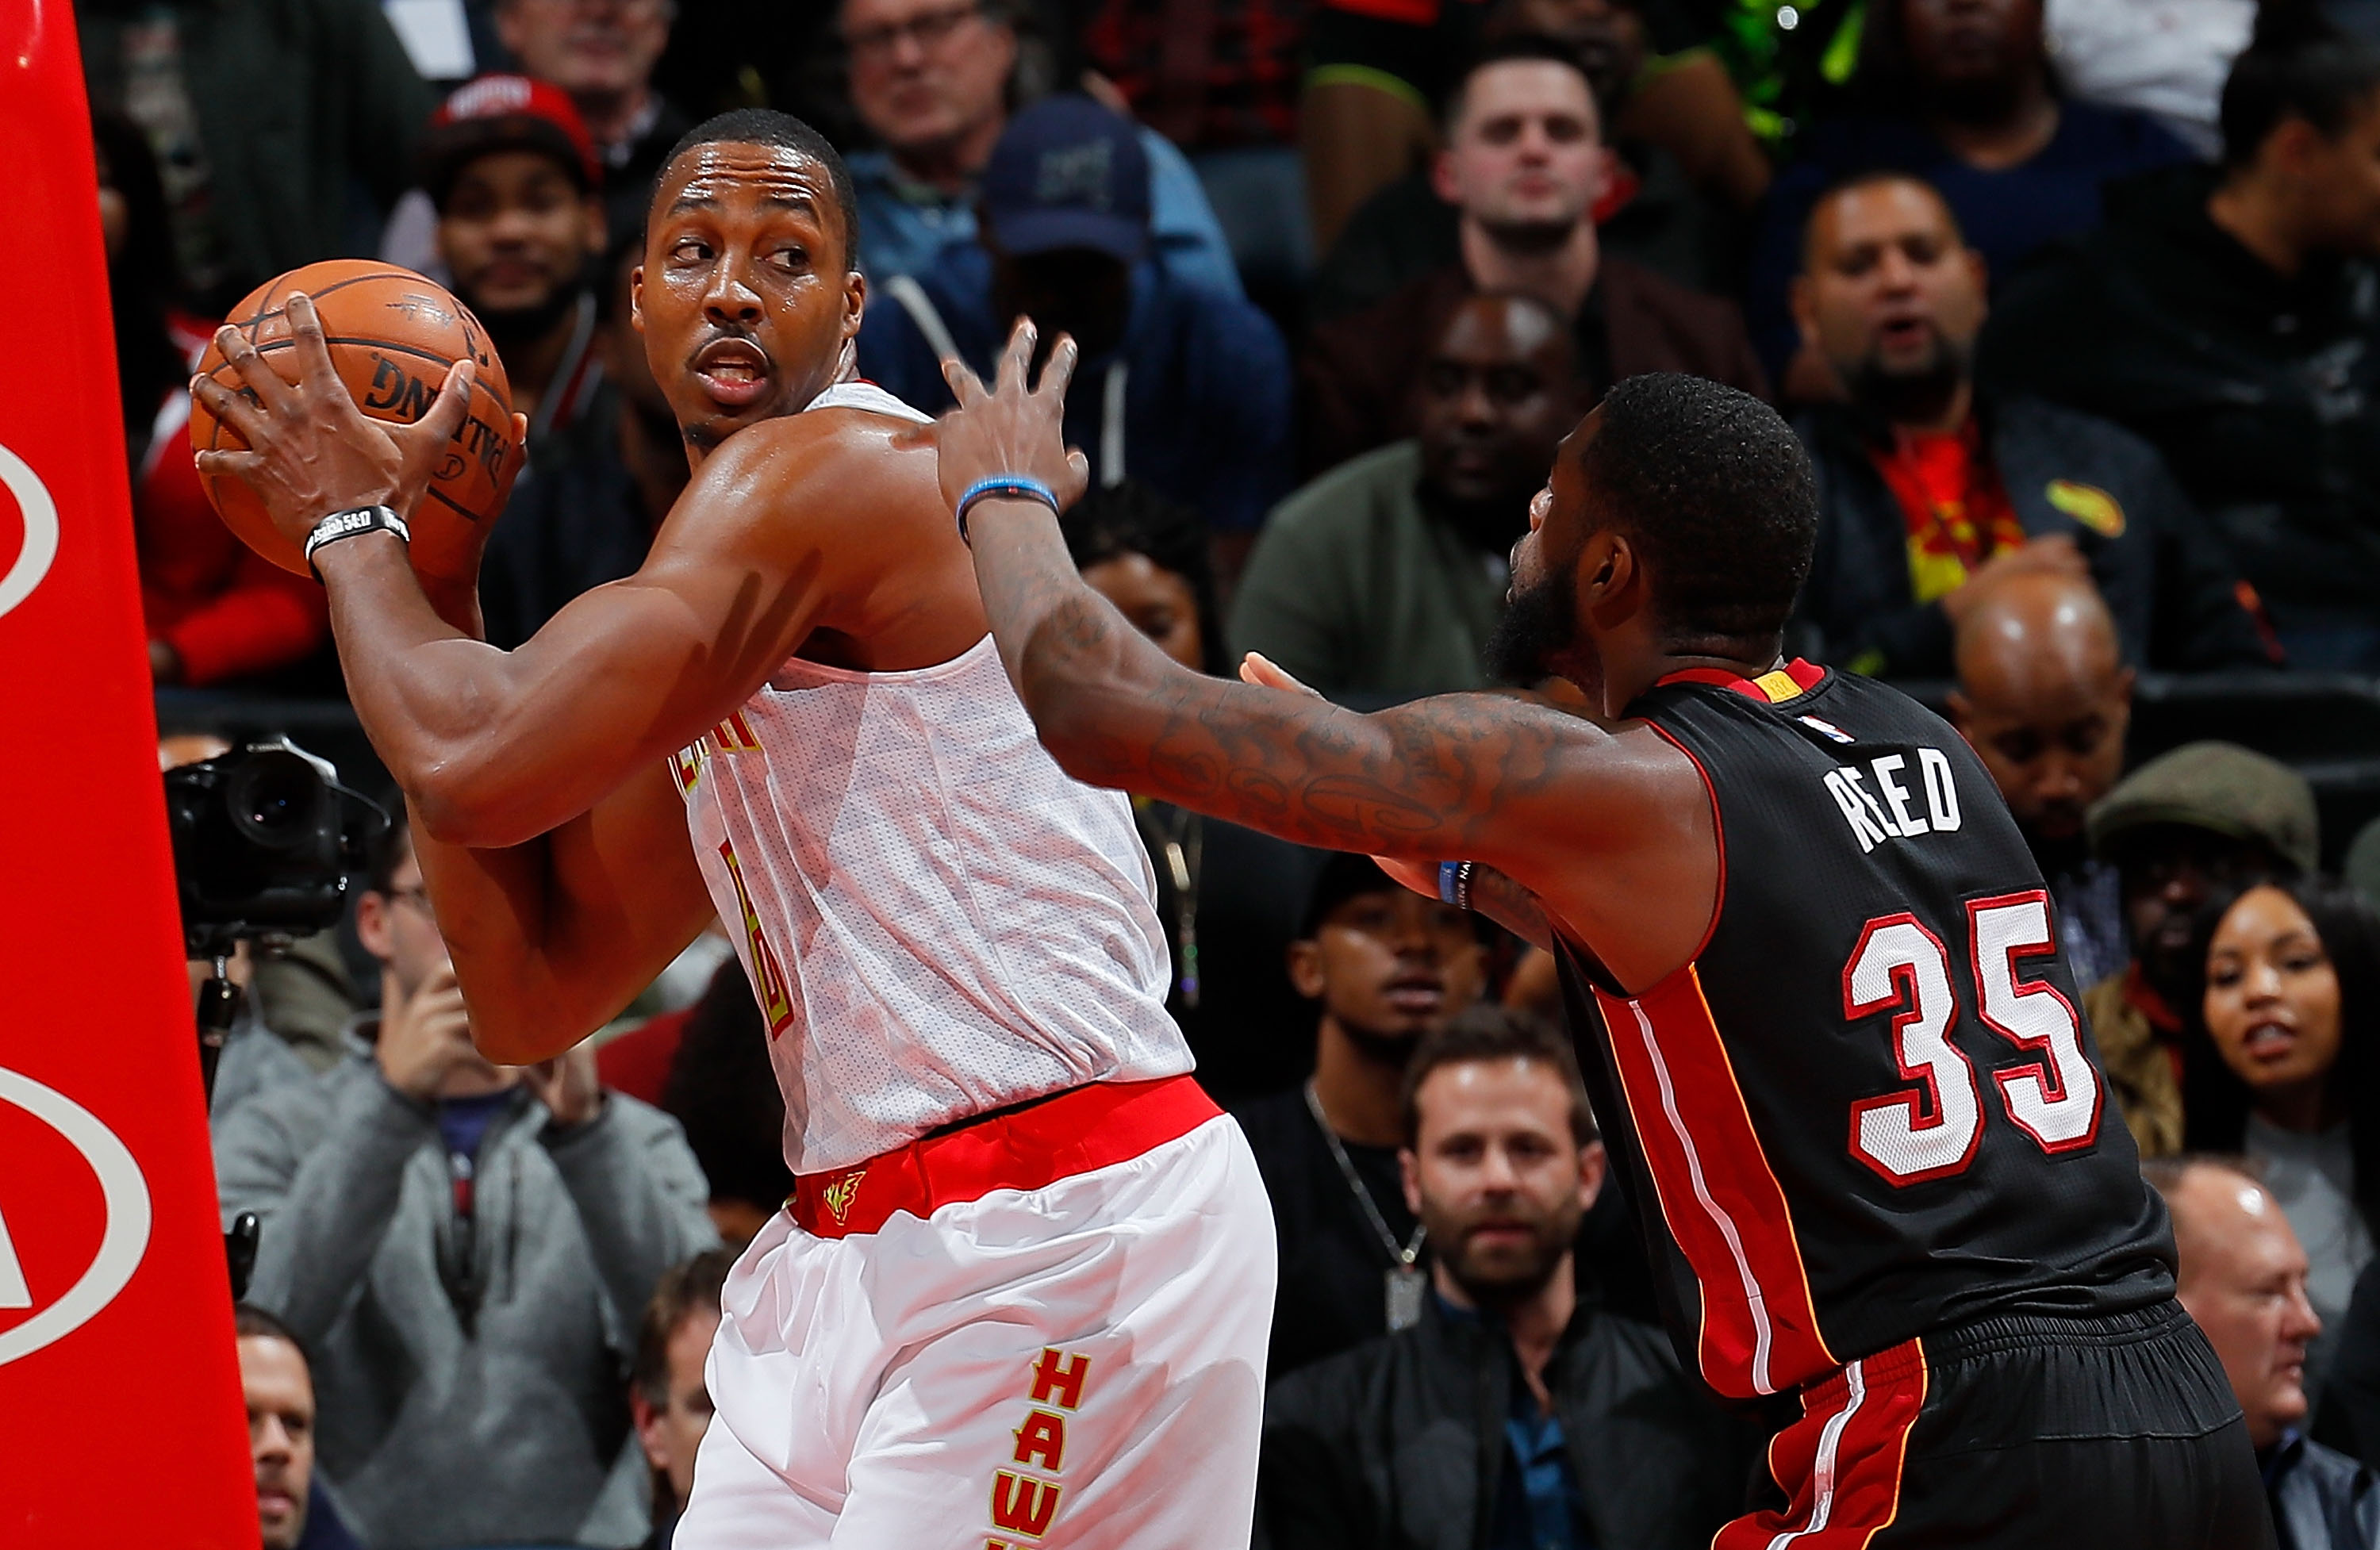 628412736-miami-heat-v-atlanta-hawks.jpg